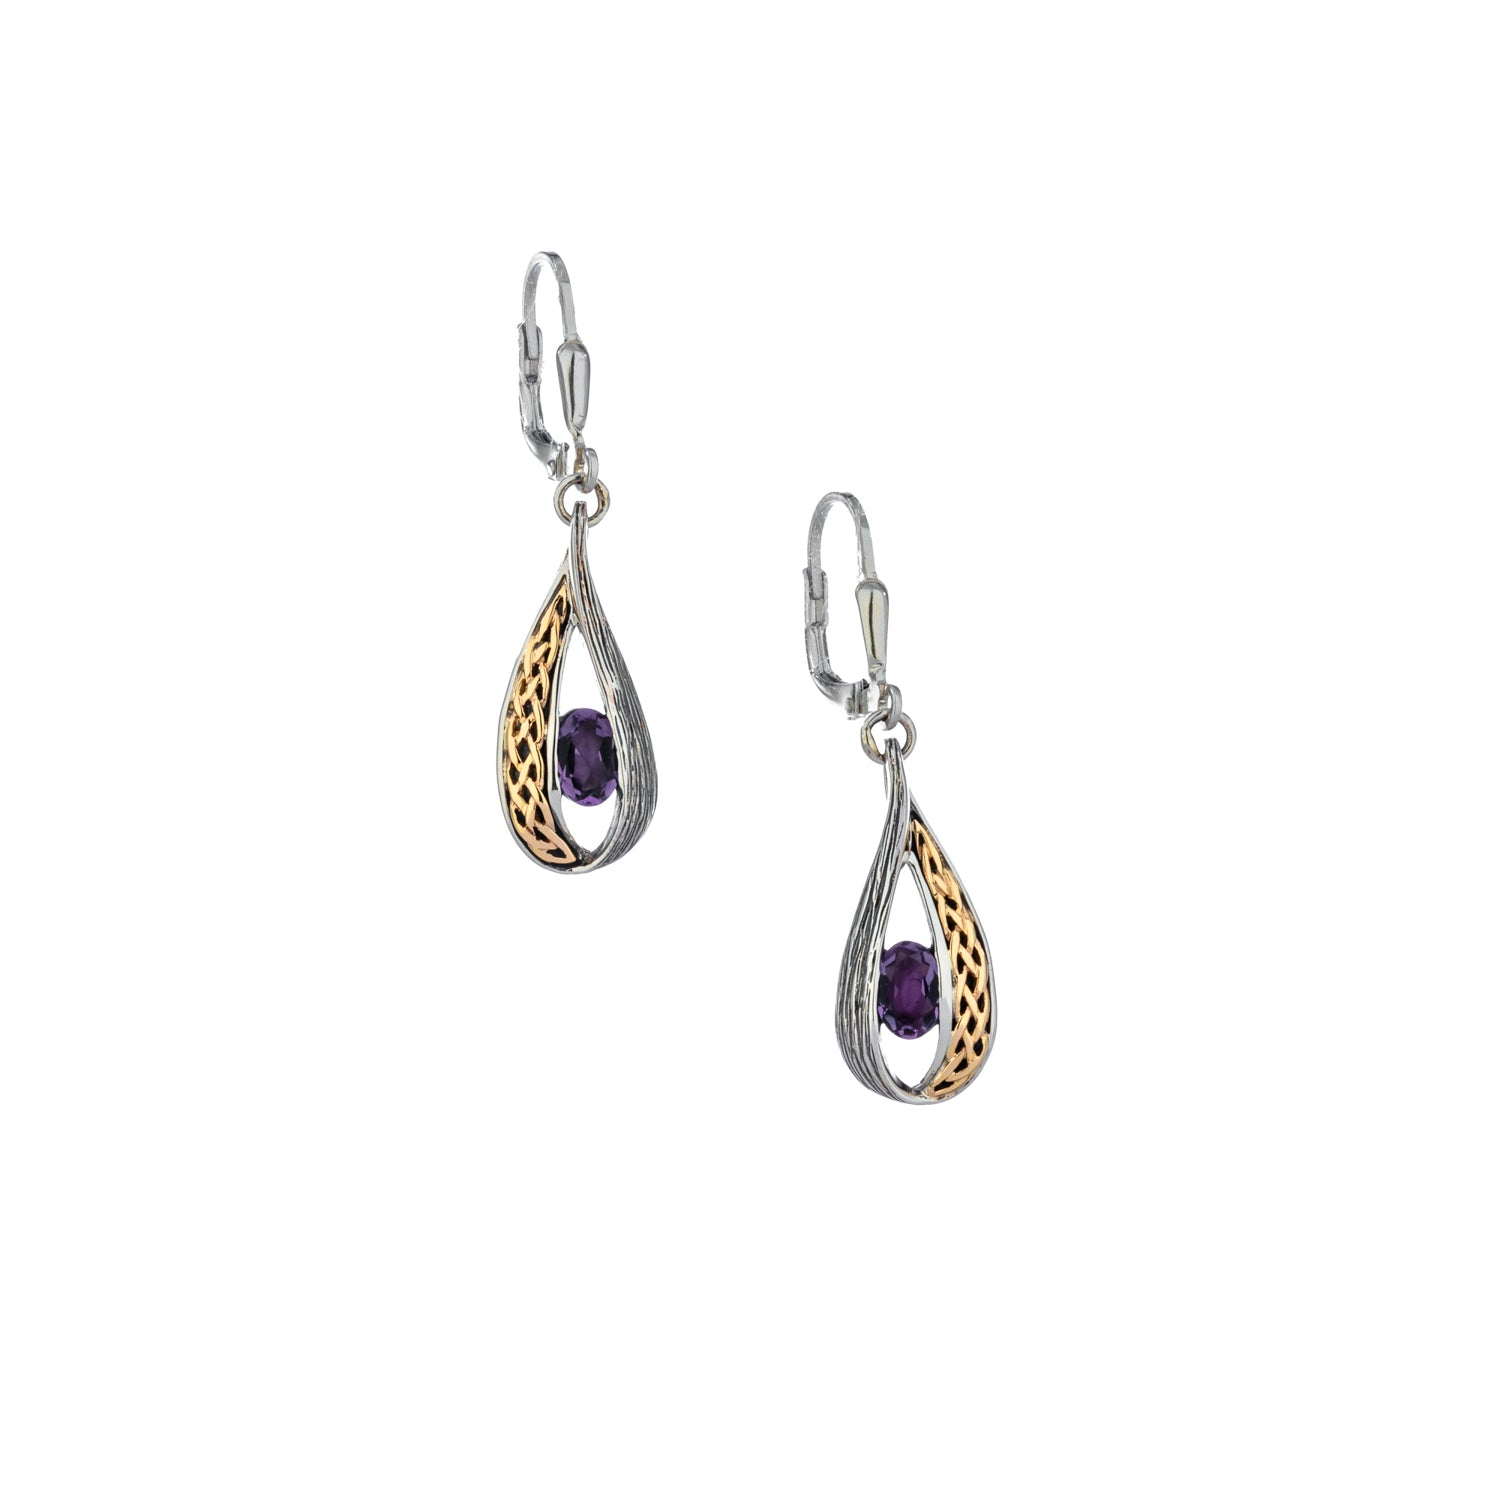 Earrings 10k Amethyst Celtic Weave Leverback Earrings from welch and company jewelers near syracuse ny